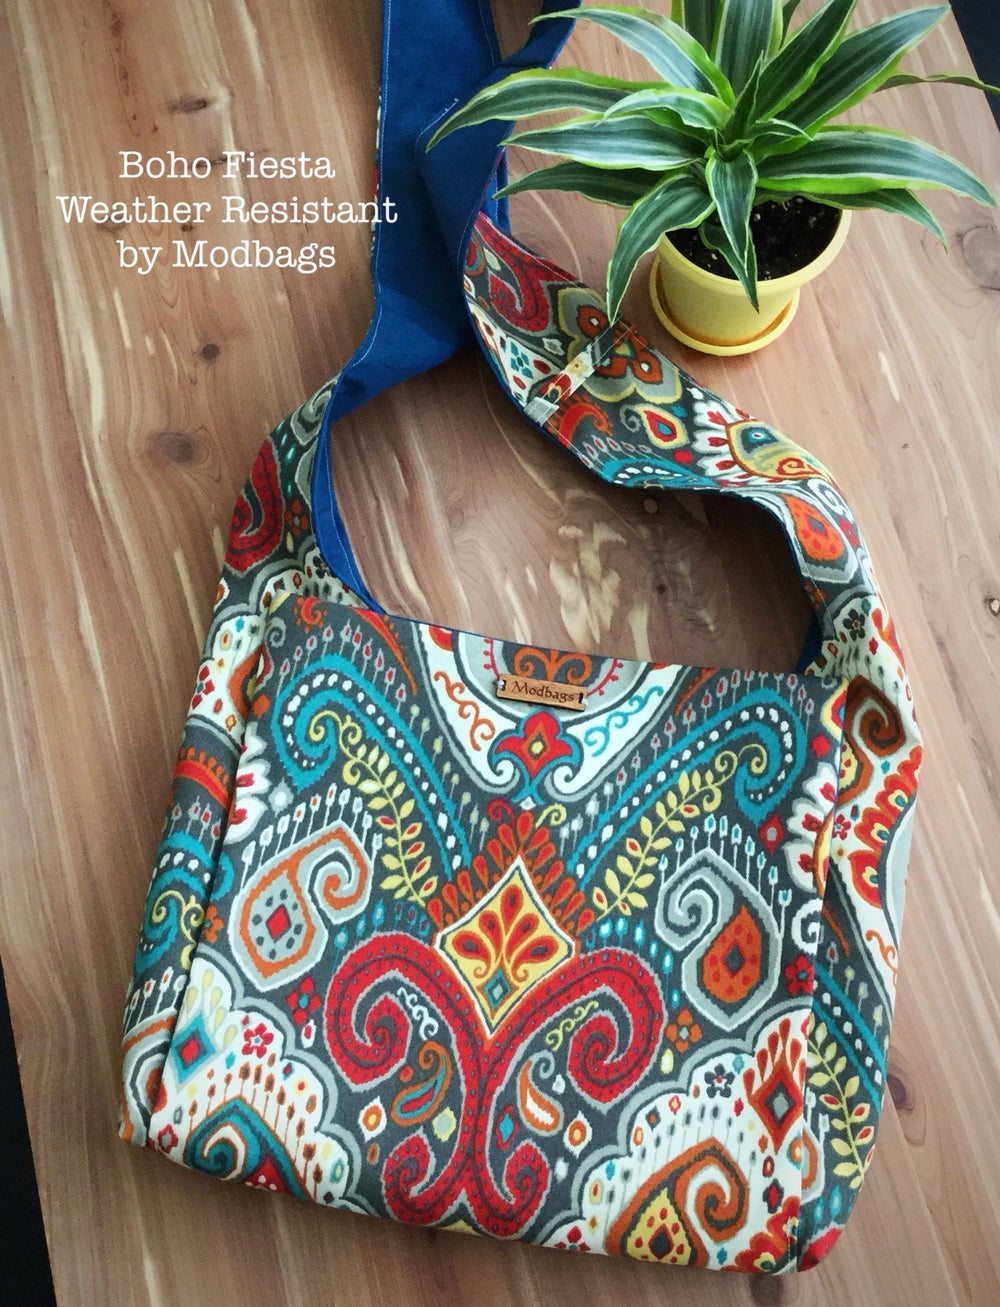 Image of Fiesta Boho Weather Resistant Ministry Bag